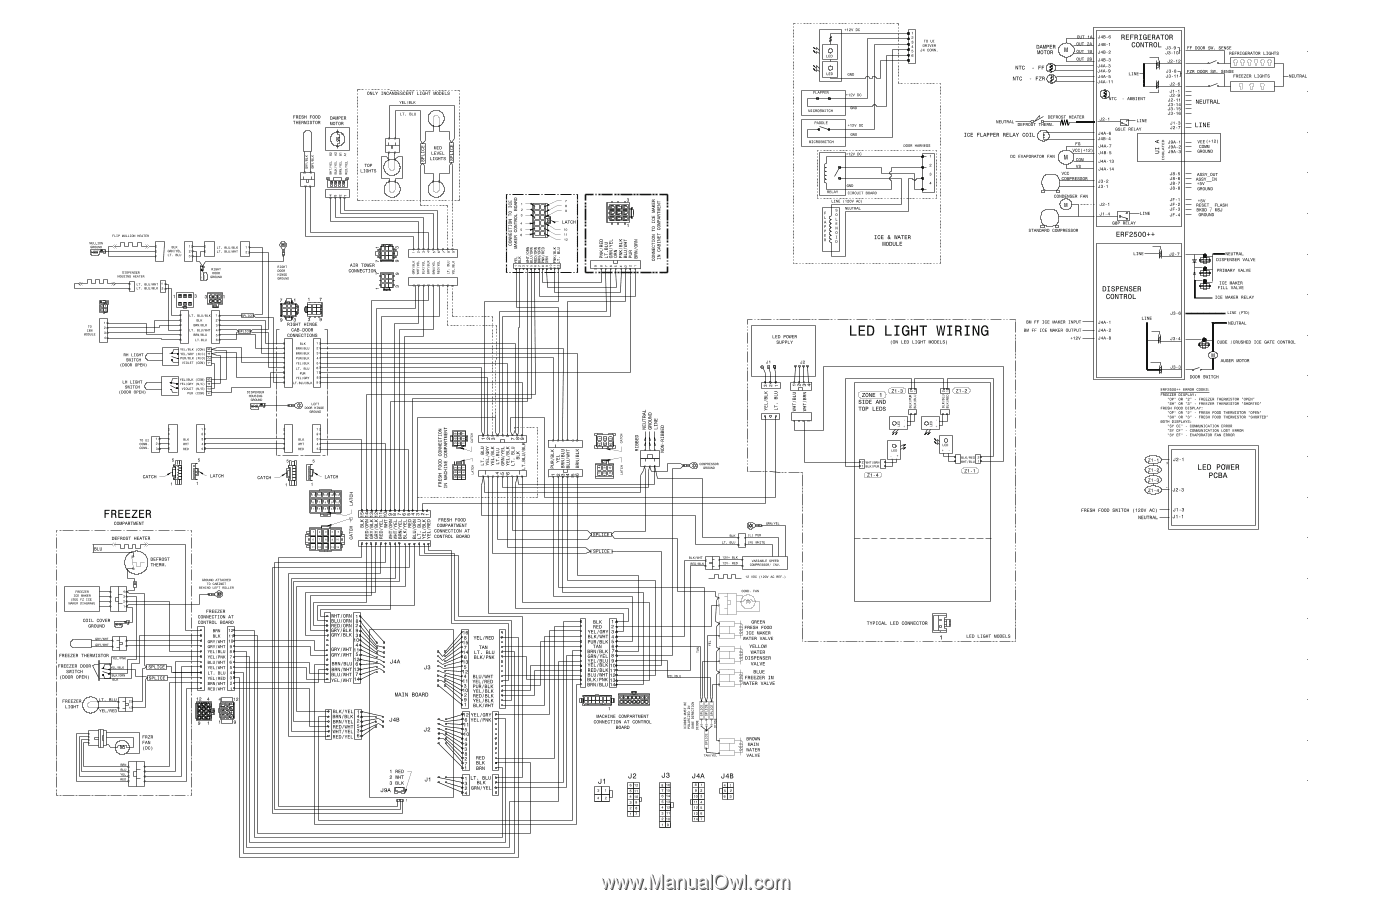 hight resolution of 242058901 wiring diagram